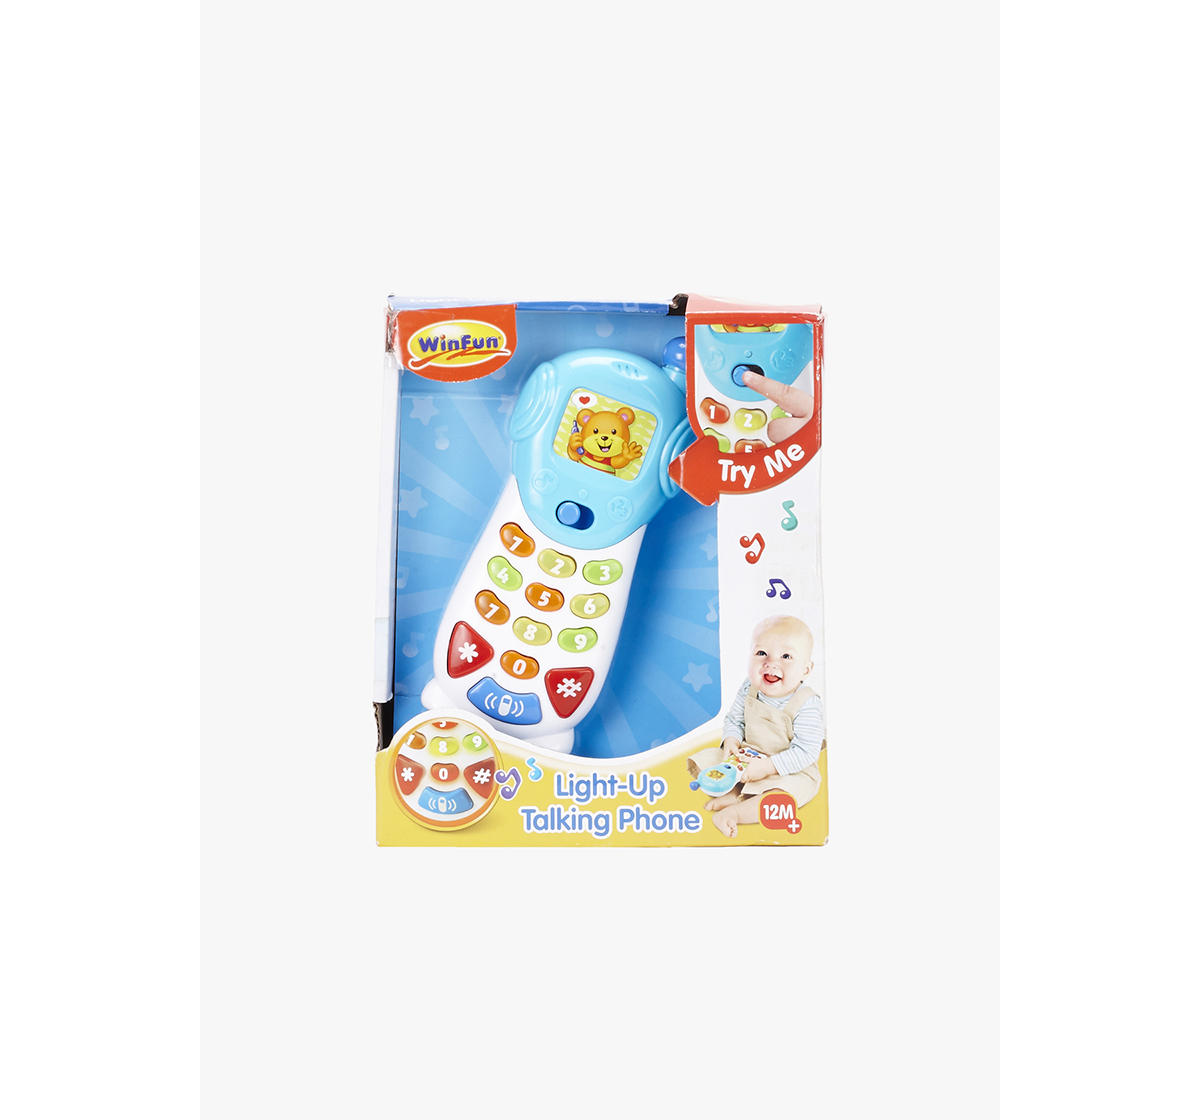 WinFun | Winfun Lightup Talking Phone Learning Toys for Kids age 12M+ (Blue)